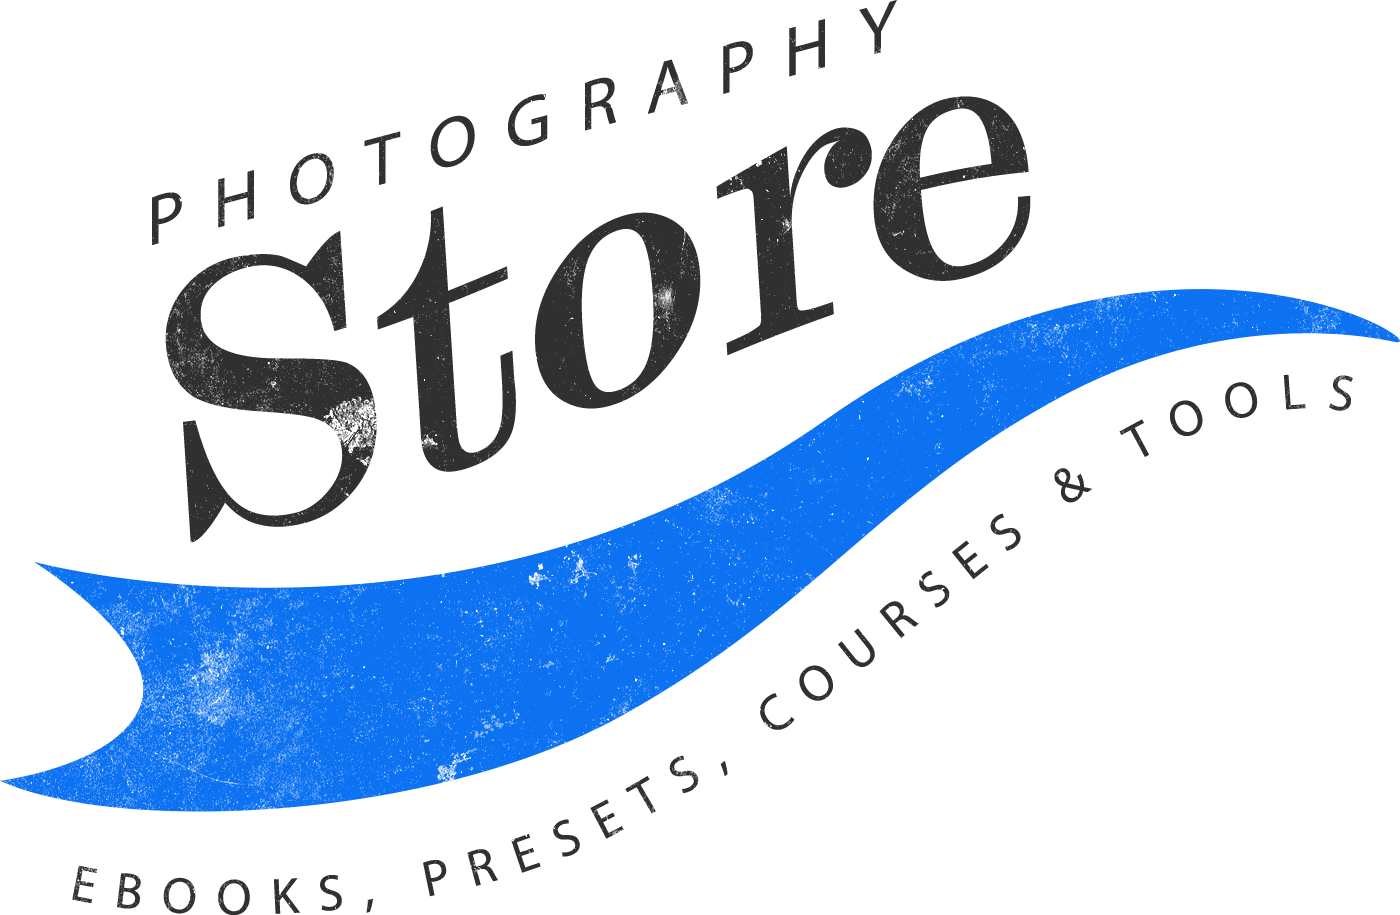 Photography Store - eBooks, Presets, Courses and Tools